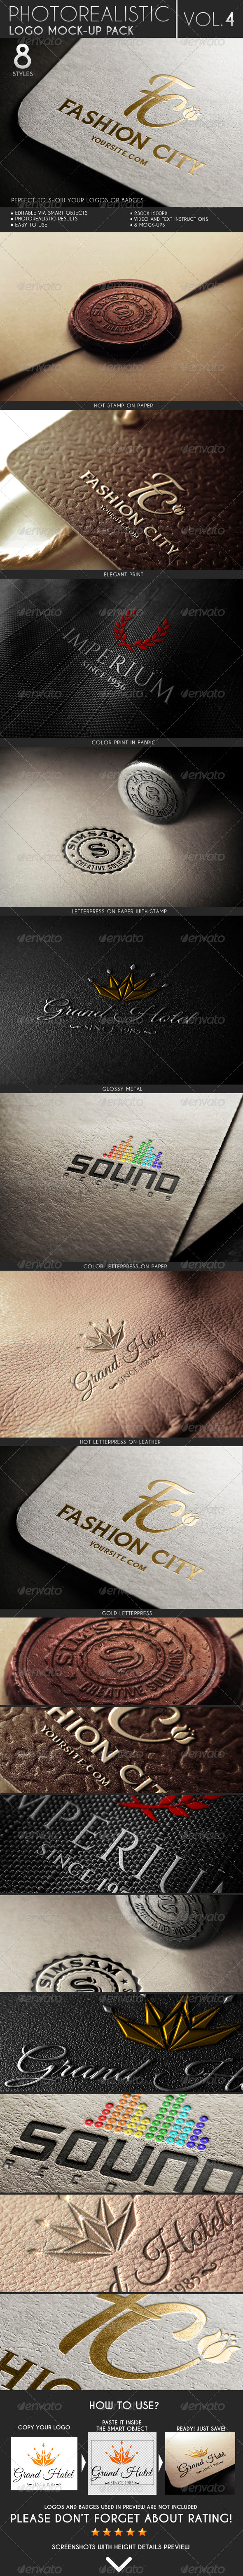 GraphicRiver Photorealistic Logo Mock-Up Pack Vol.4 6879129